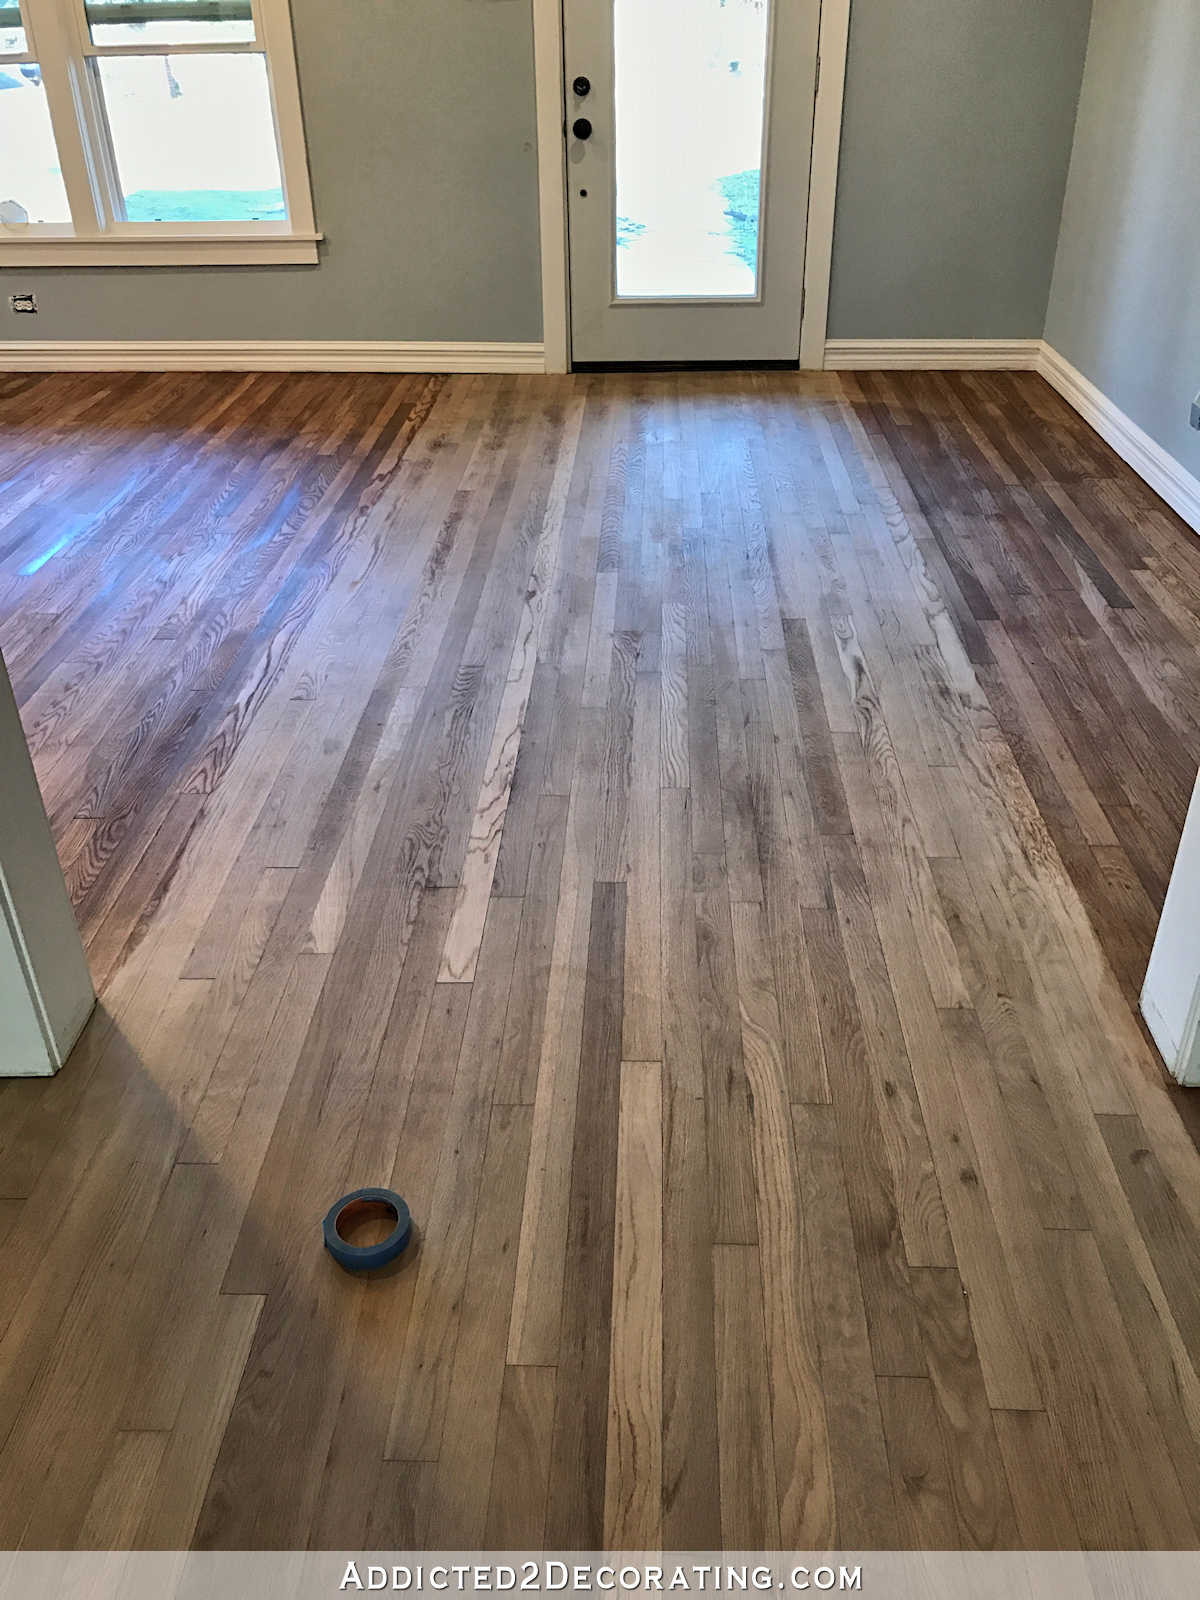 hardwood floor stain color trends of adventures in staining my red oak hardwood floors products process in staining red oak hardwood floors 4 entryway and living room wood conditioner